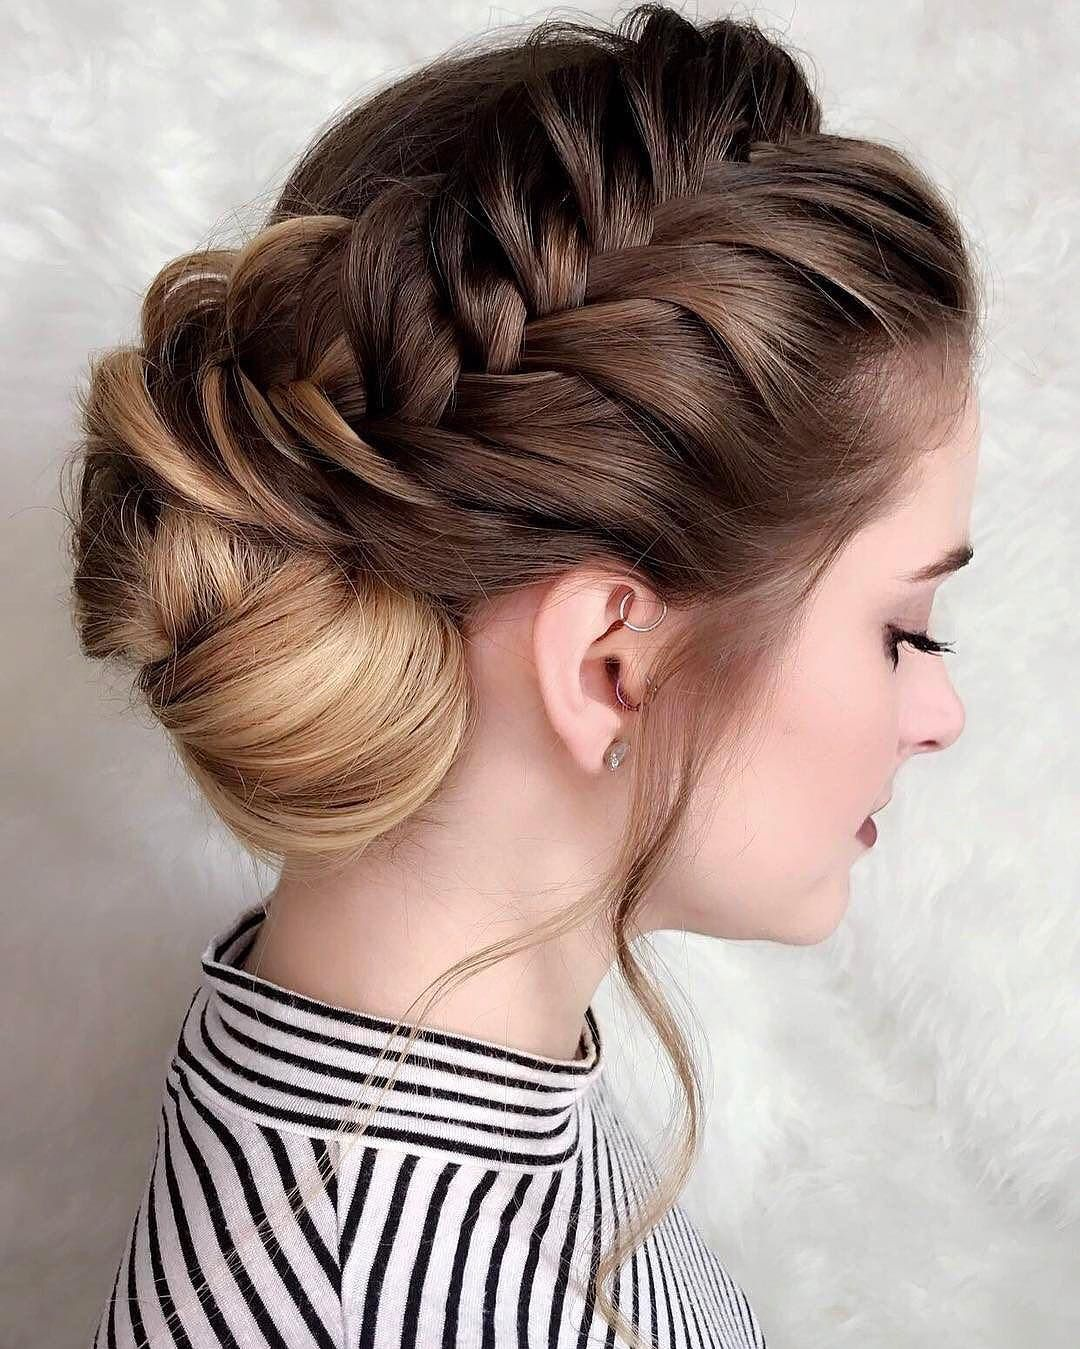 French Braids In The Front Chignon In The Back Humpdayhair Regra Hair Styles Stylish Hair Cool Hairstyles